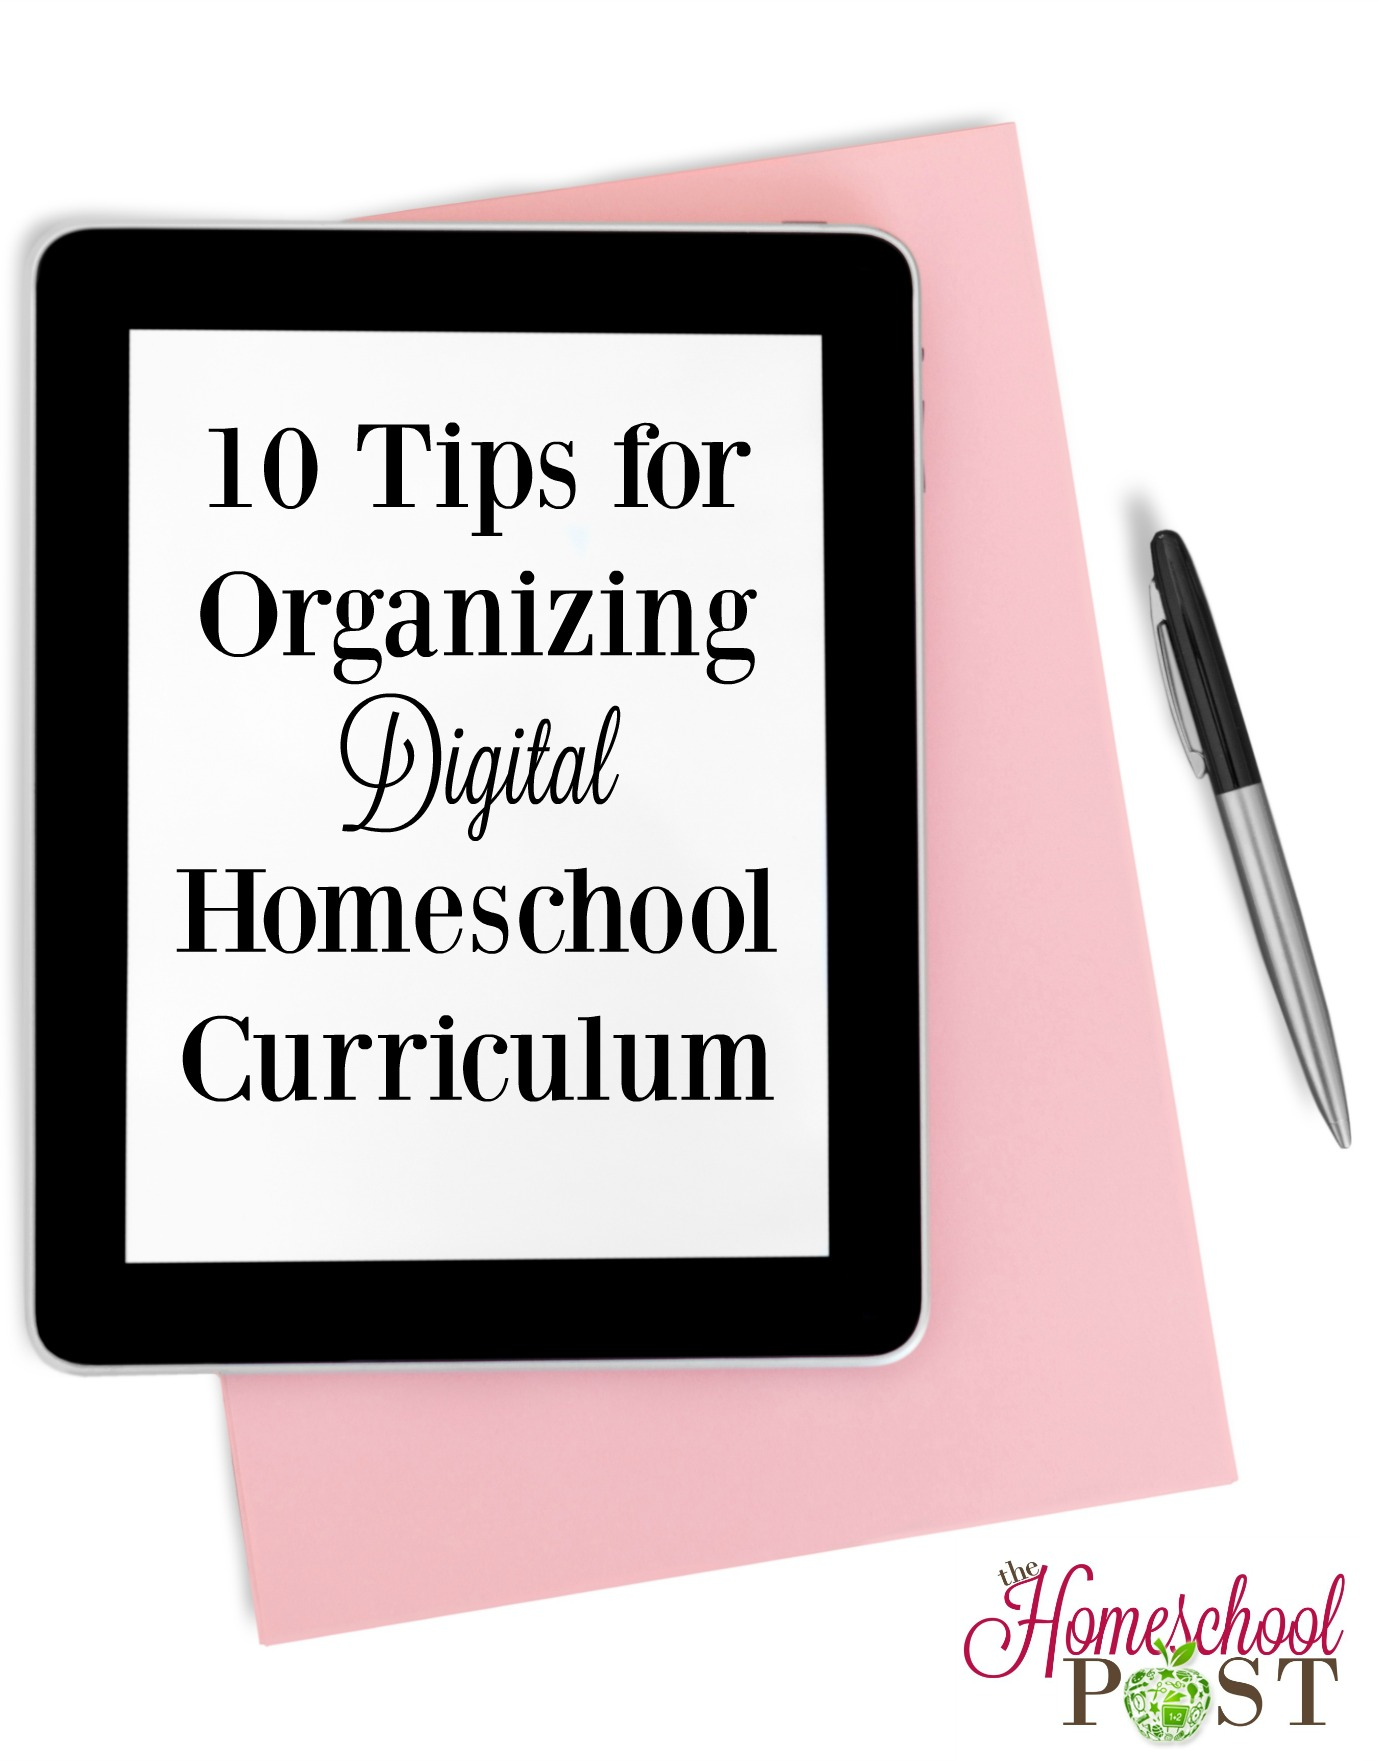 10 practical tips to keep your digital homeschool curriculum organized so you can get the best use of it! hsbapost.com